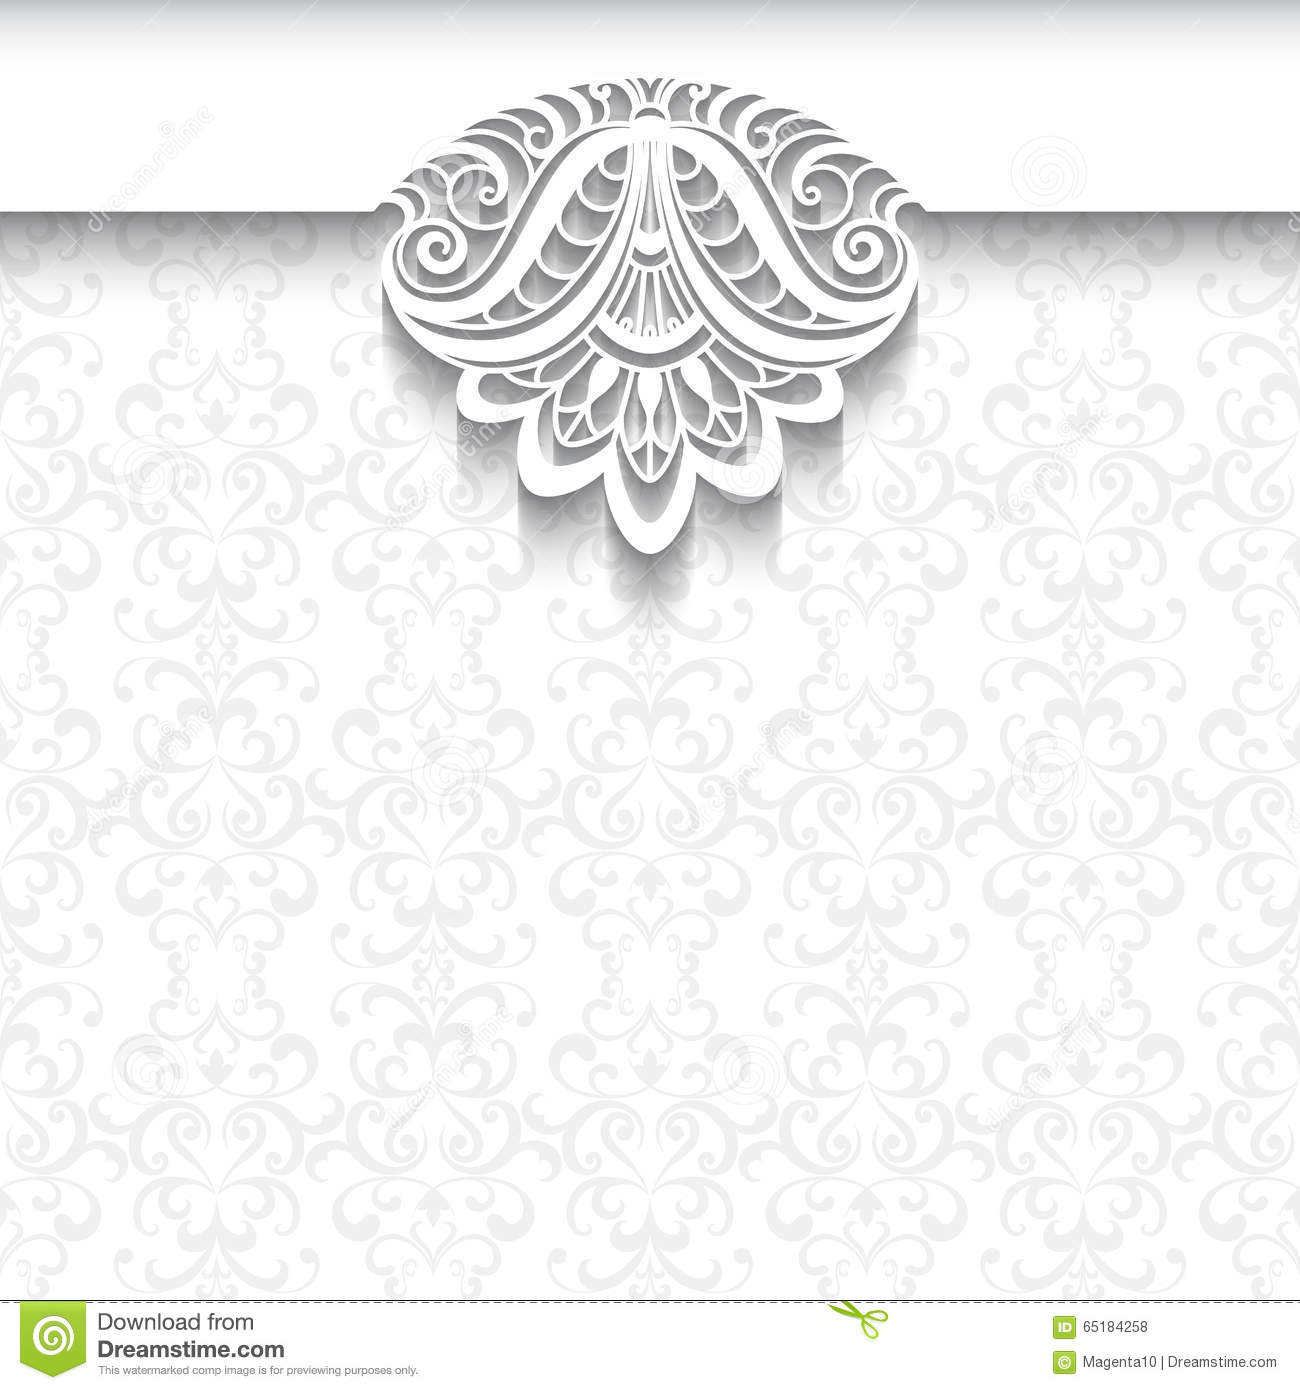 white lace background wedding invitation template - Wedding Invitation Background